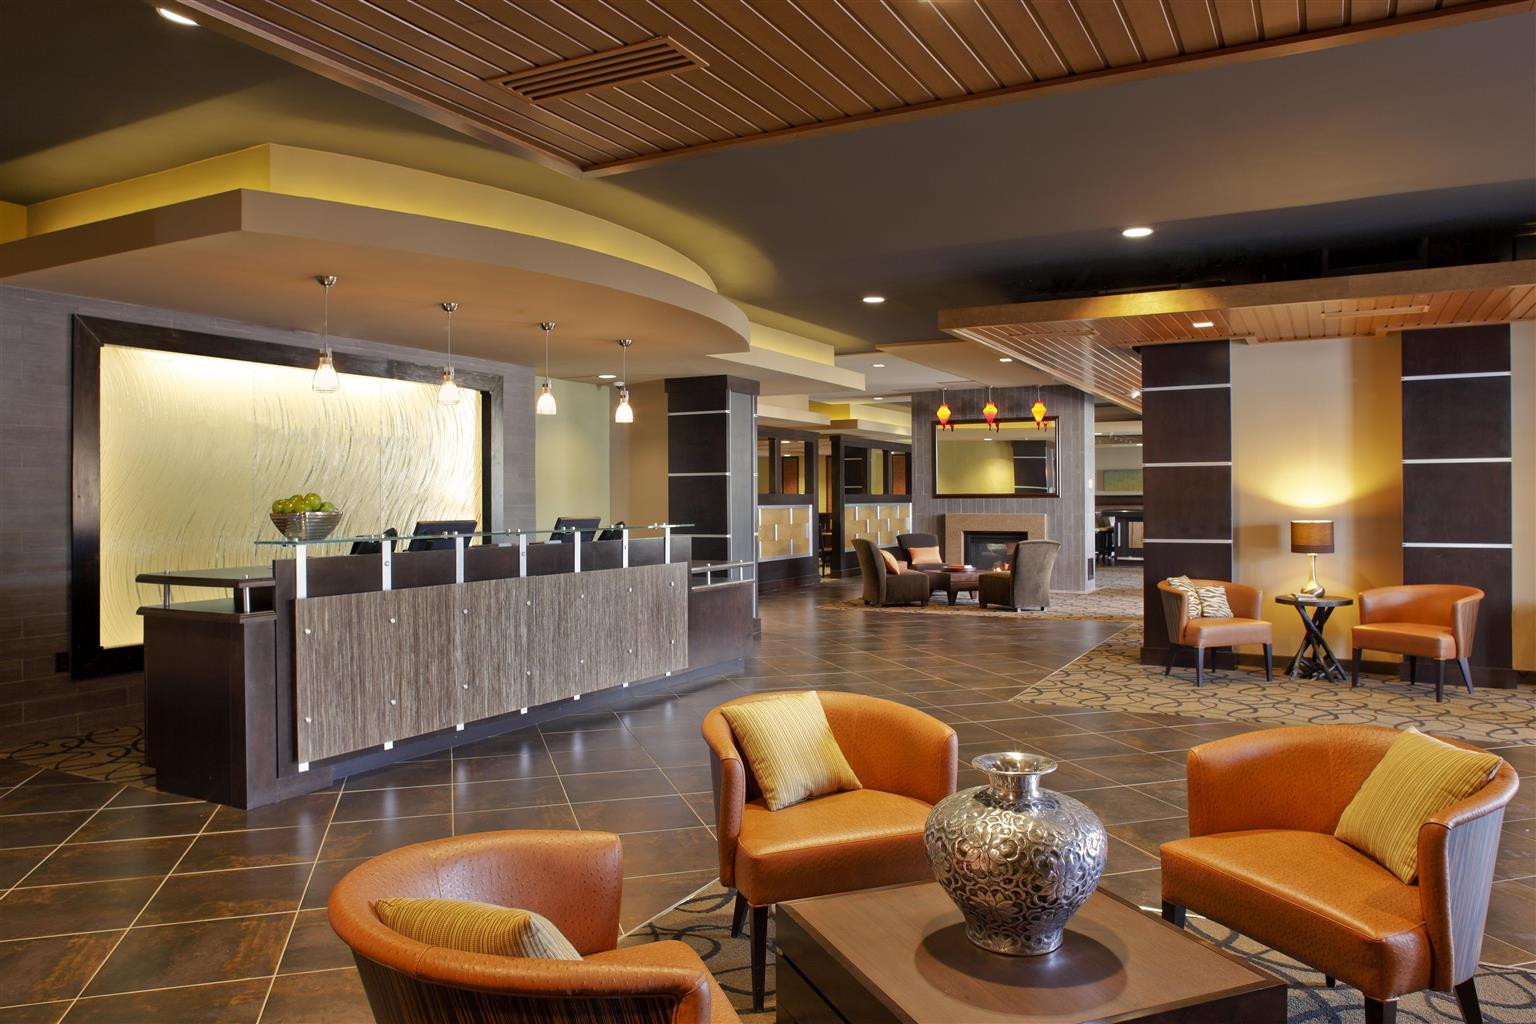 Hotels Near I-40 and I-540 in Morrisville, NC